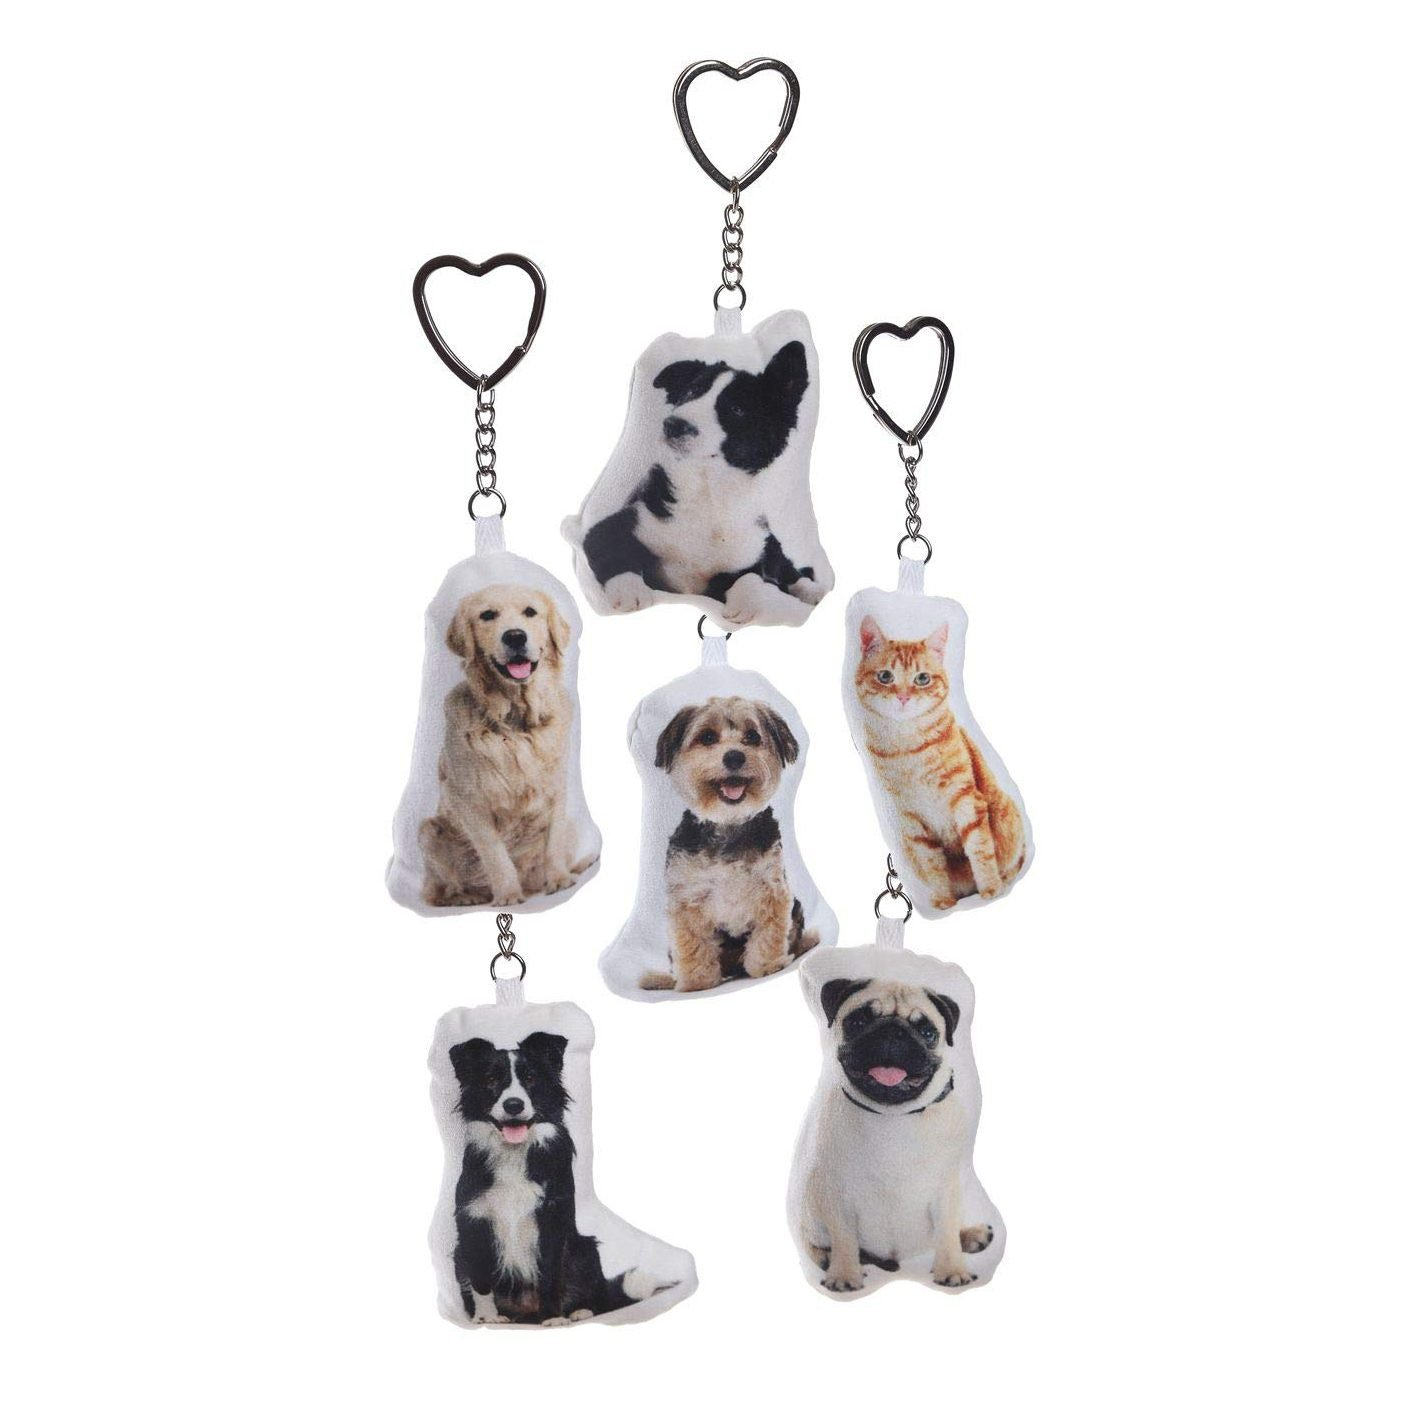 dog key chains